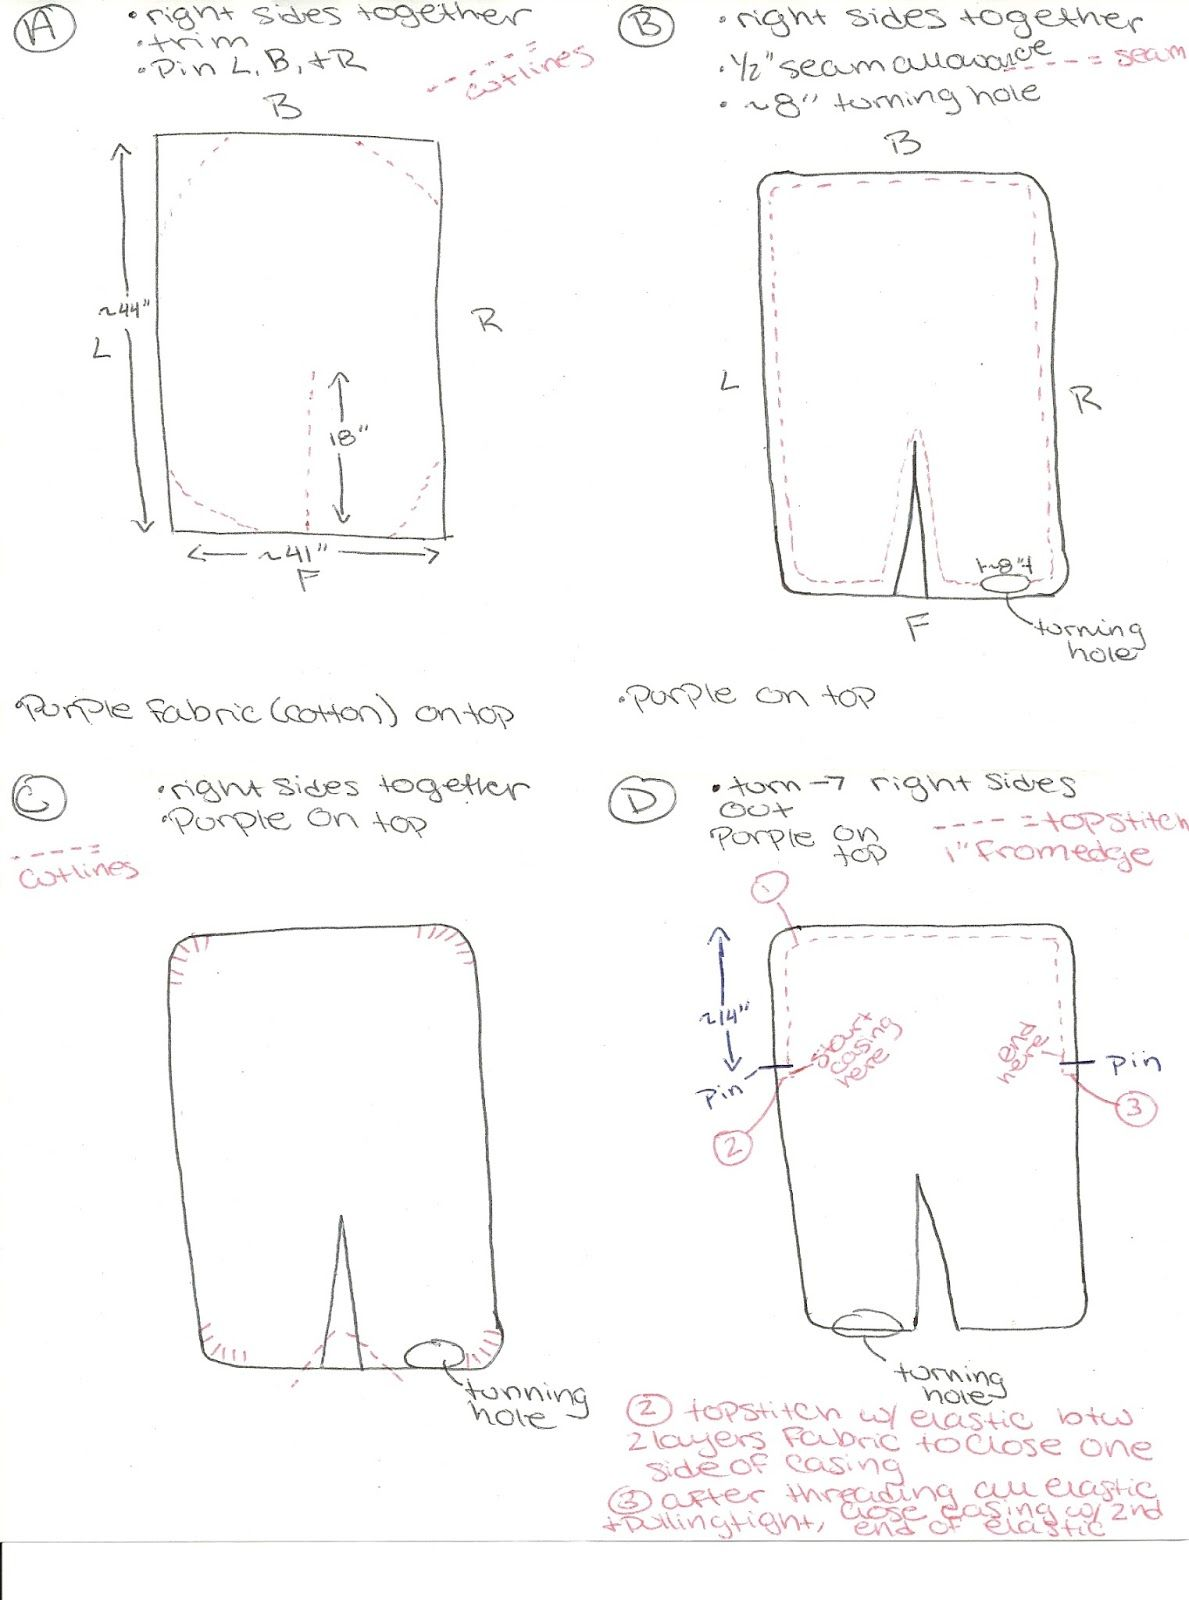 House 6 Carseat Canopy Tutorial  sc 1 st  Pinterest & House 6: Carseat Canopy Tutorial | Easy Diy | Pinterest ...